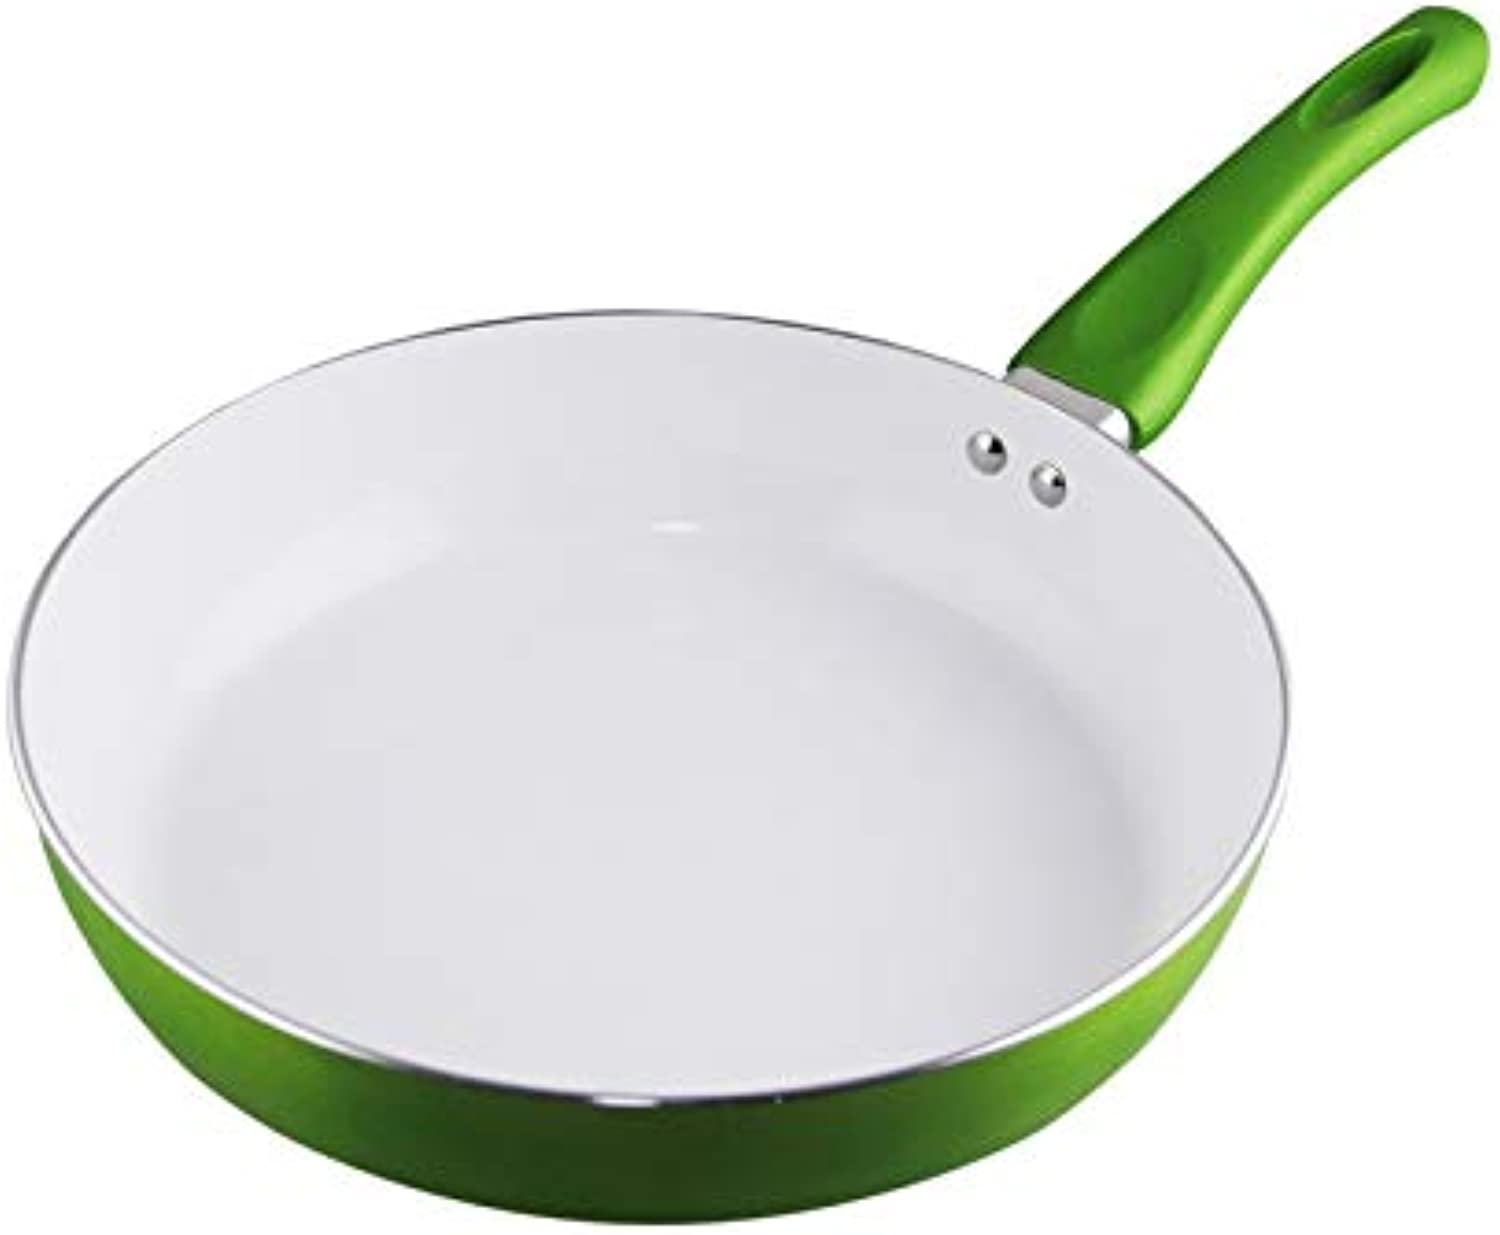 Non-Stick Copper Frying Pan with Nanoscale Ceramic Coating and Induction Cooking,Oven & Dishwasher Safe panela de Ceramica Pot 26cm, Green